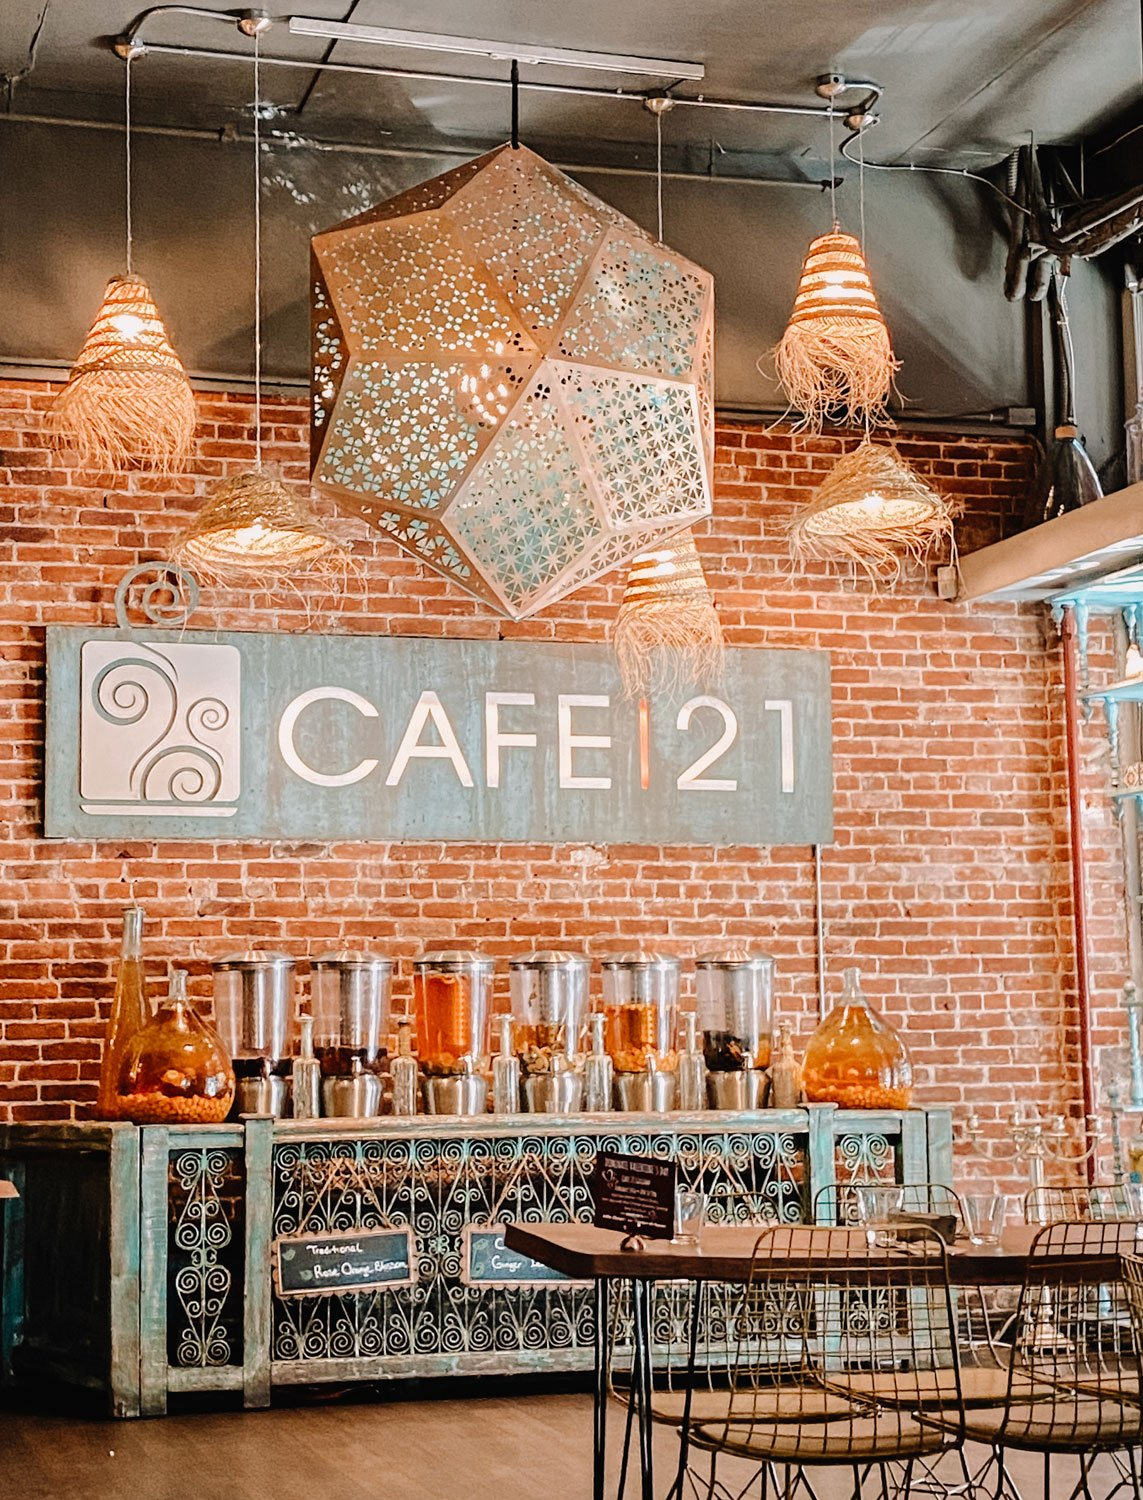 Cafe21, Gaslamp, San Diego